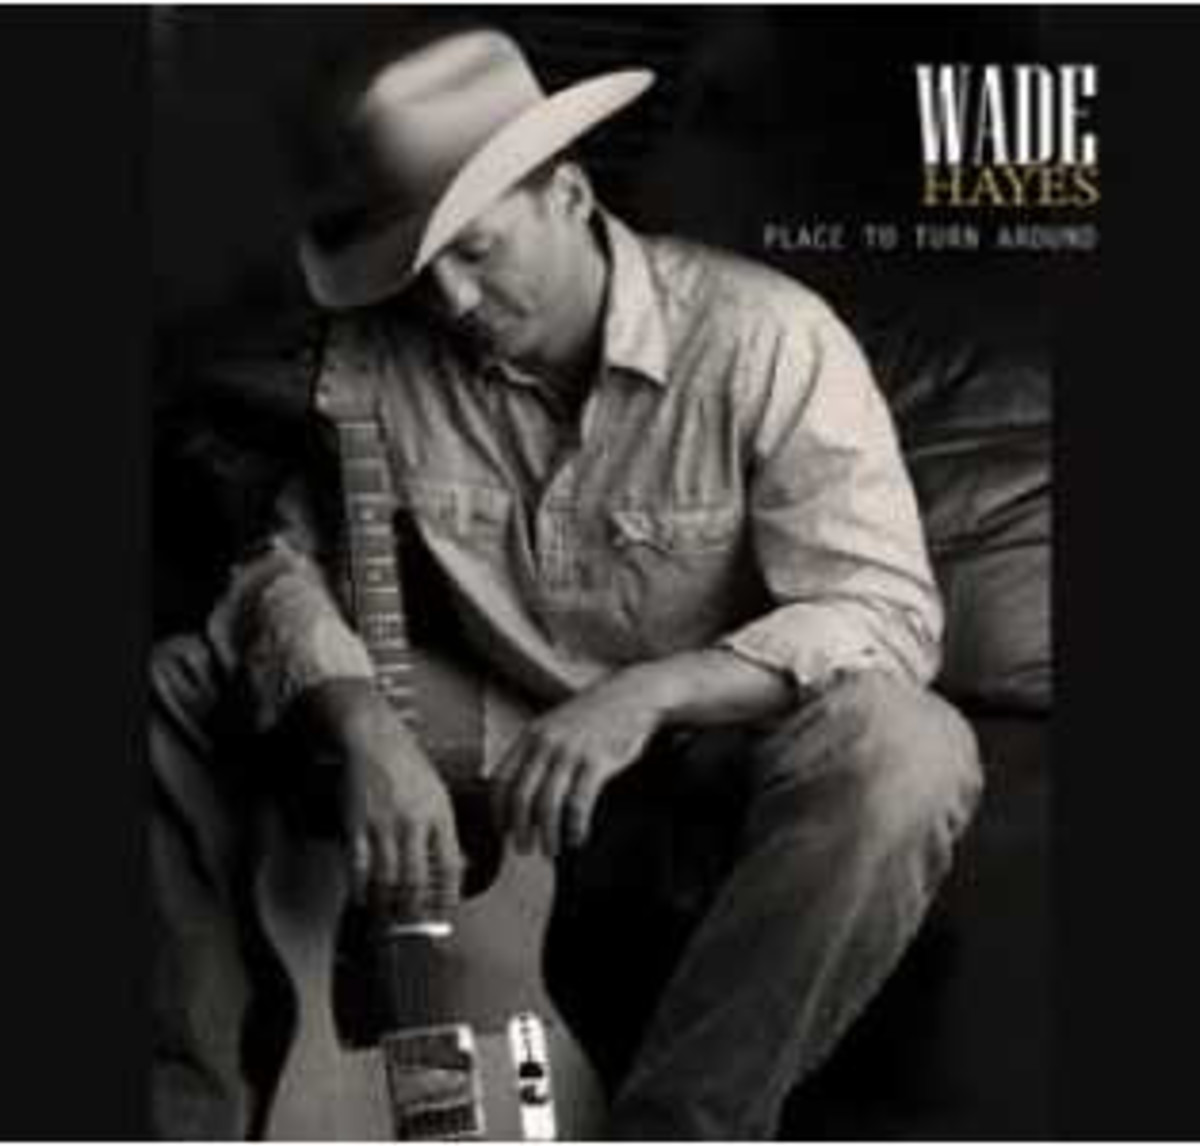 """Another Wade Hayes album titled """"Place To Turn Around."""""""